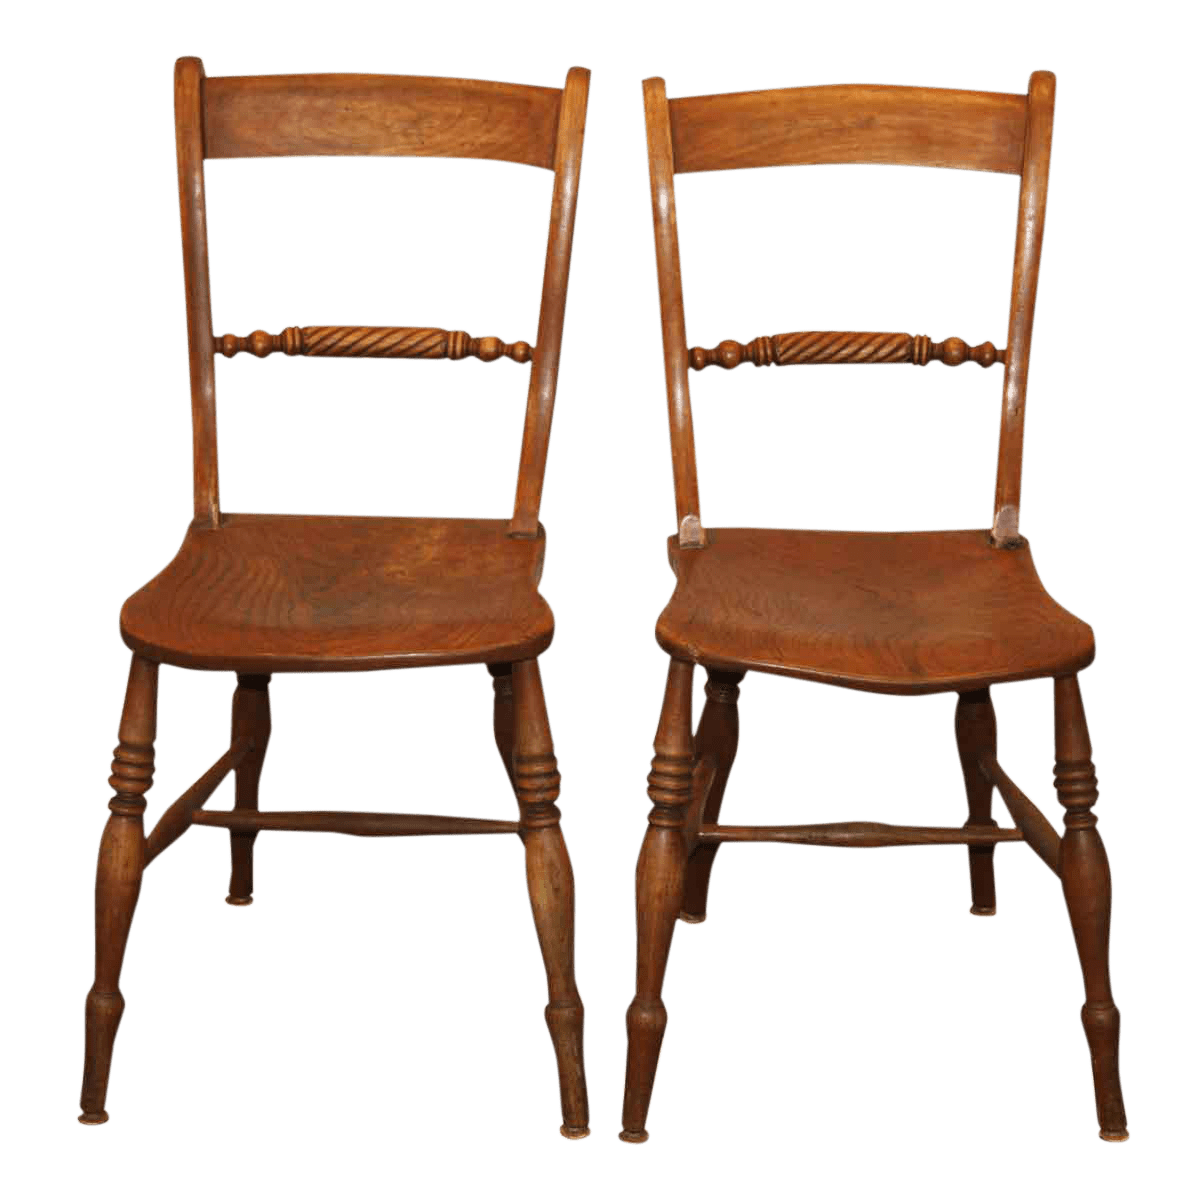 fixing wooden chairs jumbo rocking chair cushions antique spindle rope design dining a pair chairish for sale